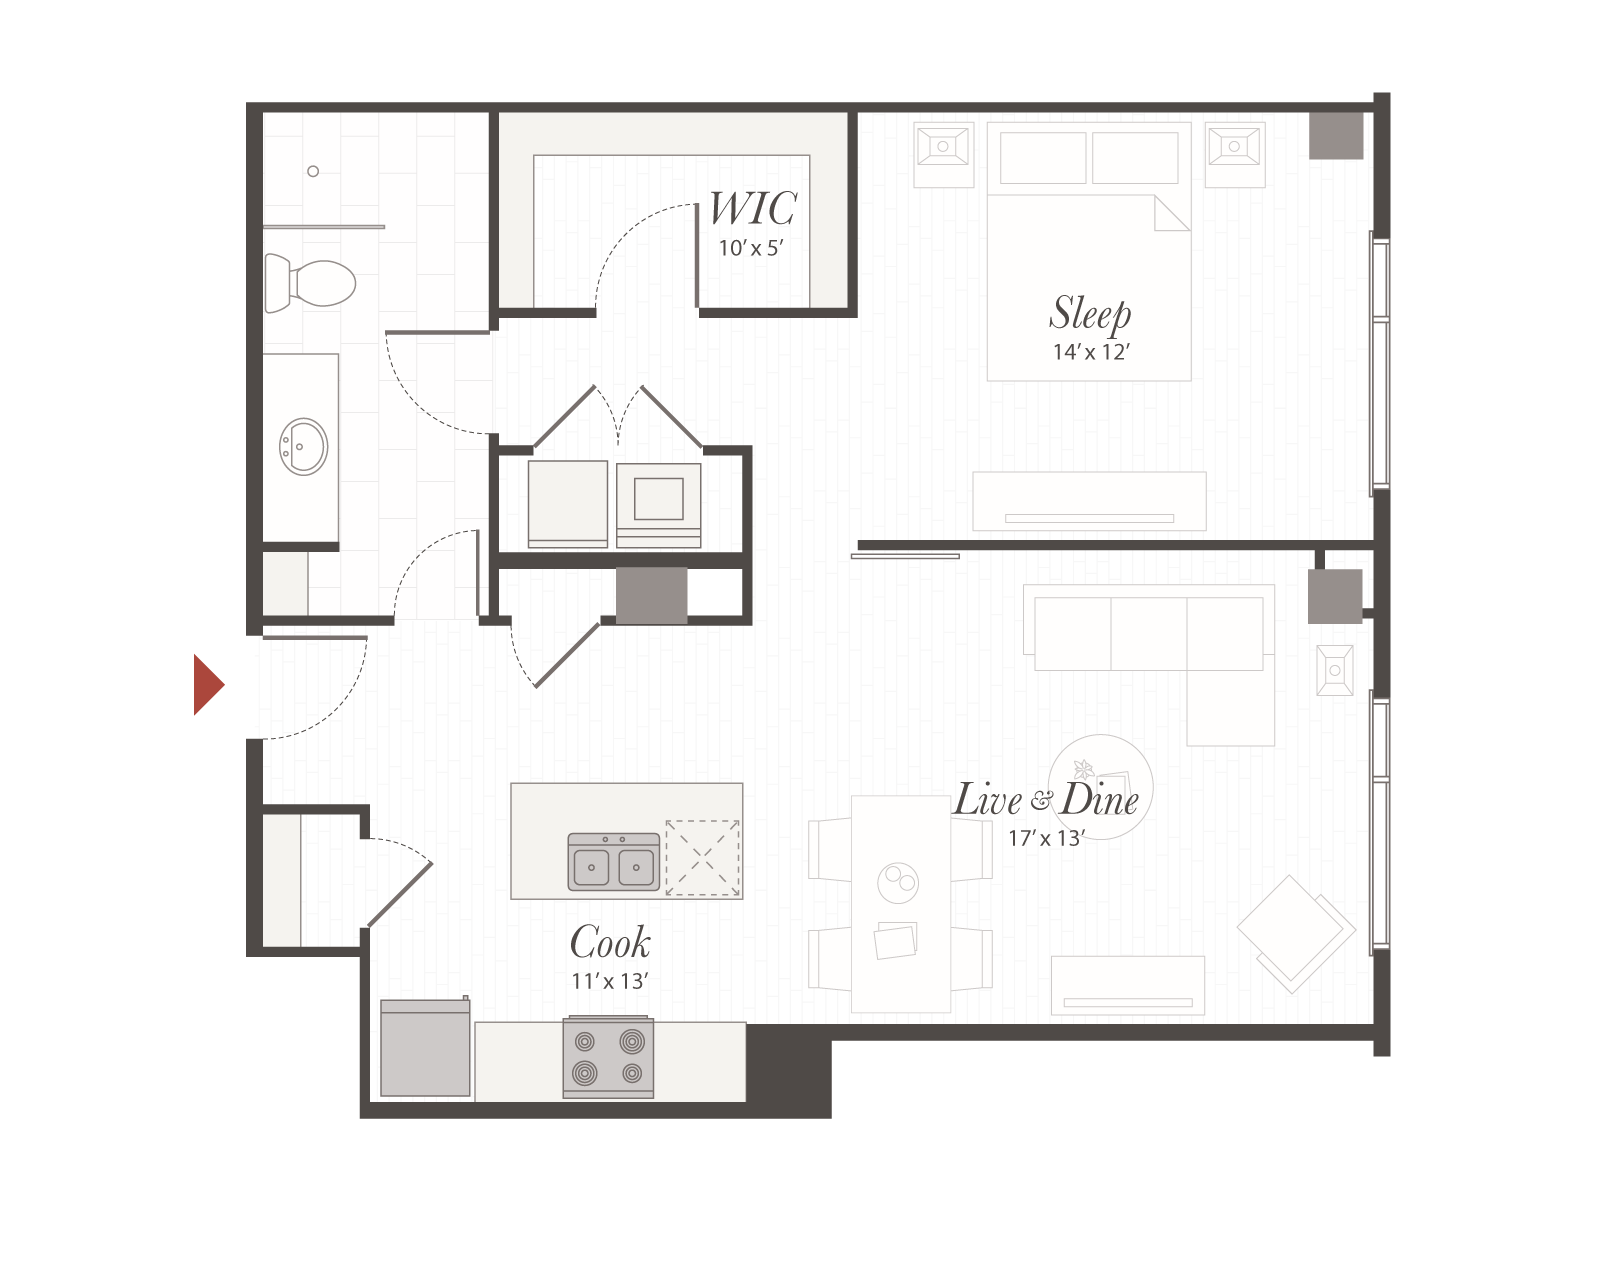 T7 Floor Plan 1 Bedroom Luxury Apartment Cincinnati Oh